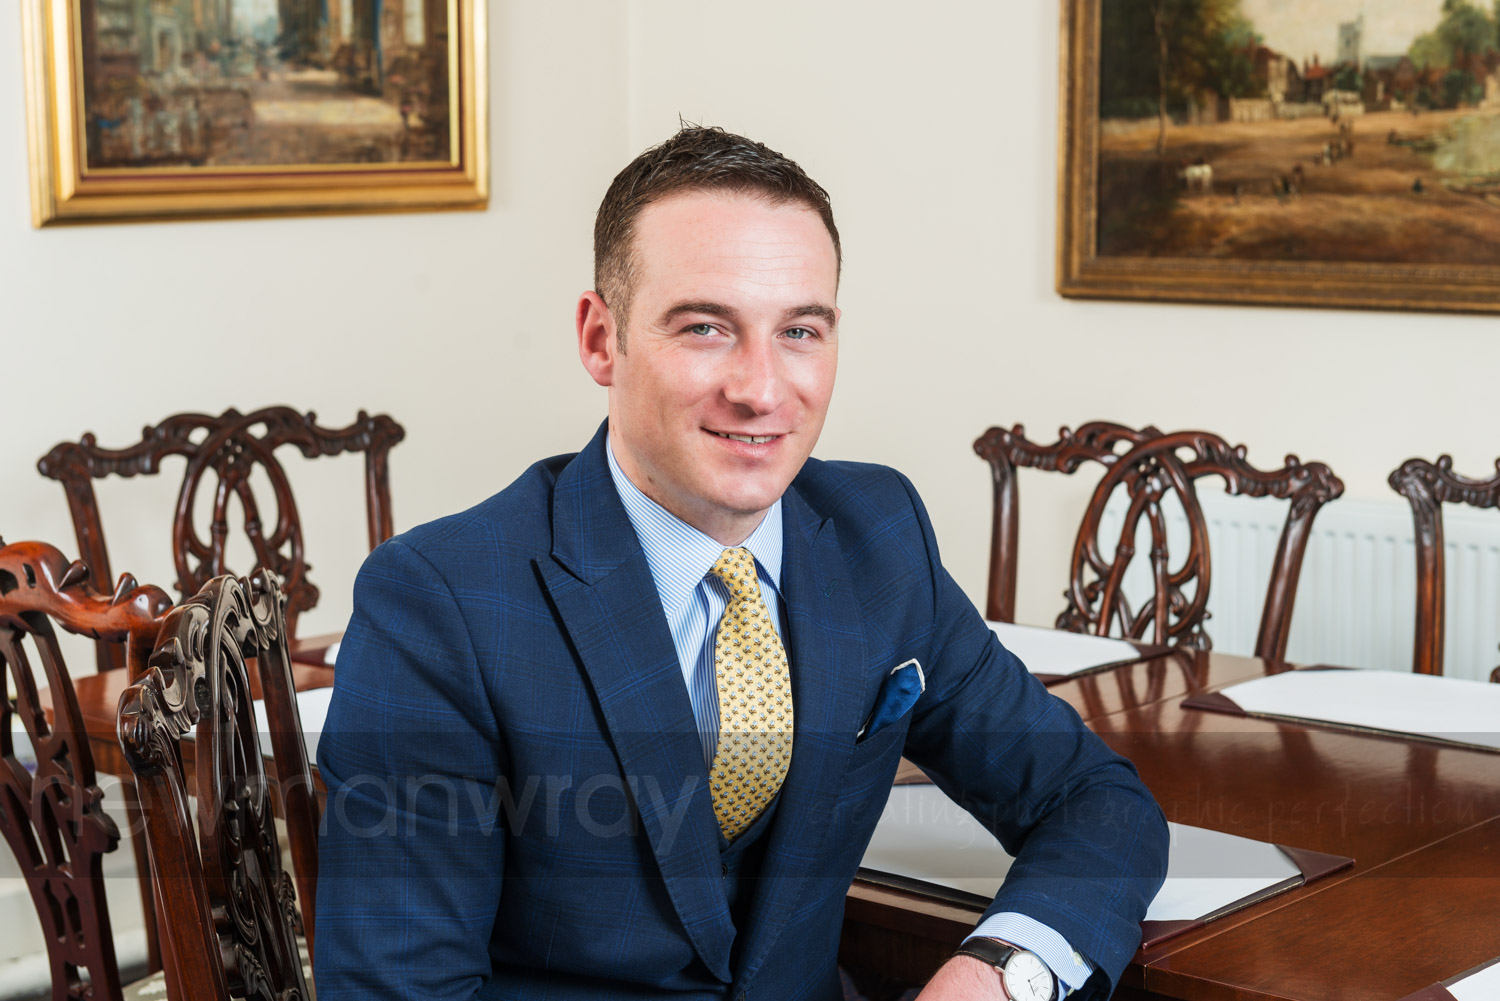 tadcaster_advertising_photography-13